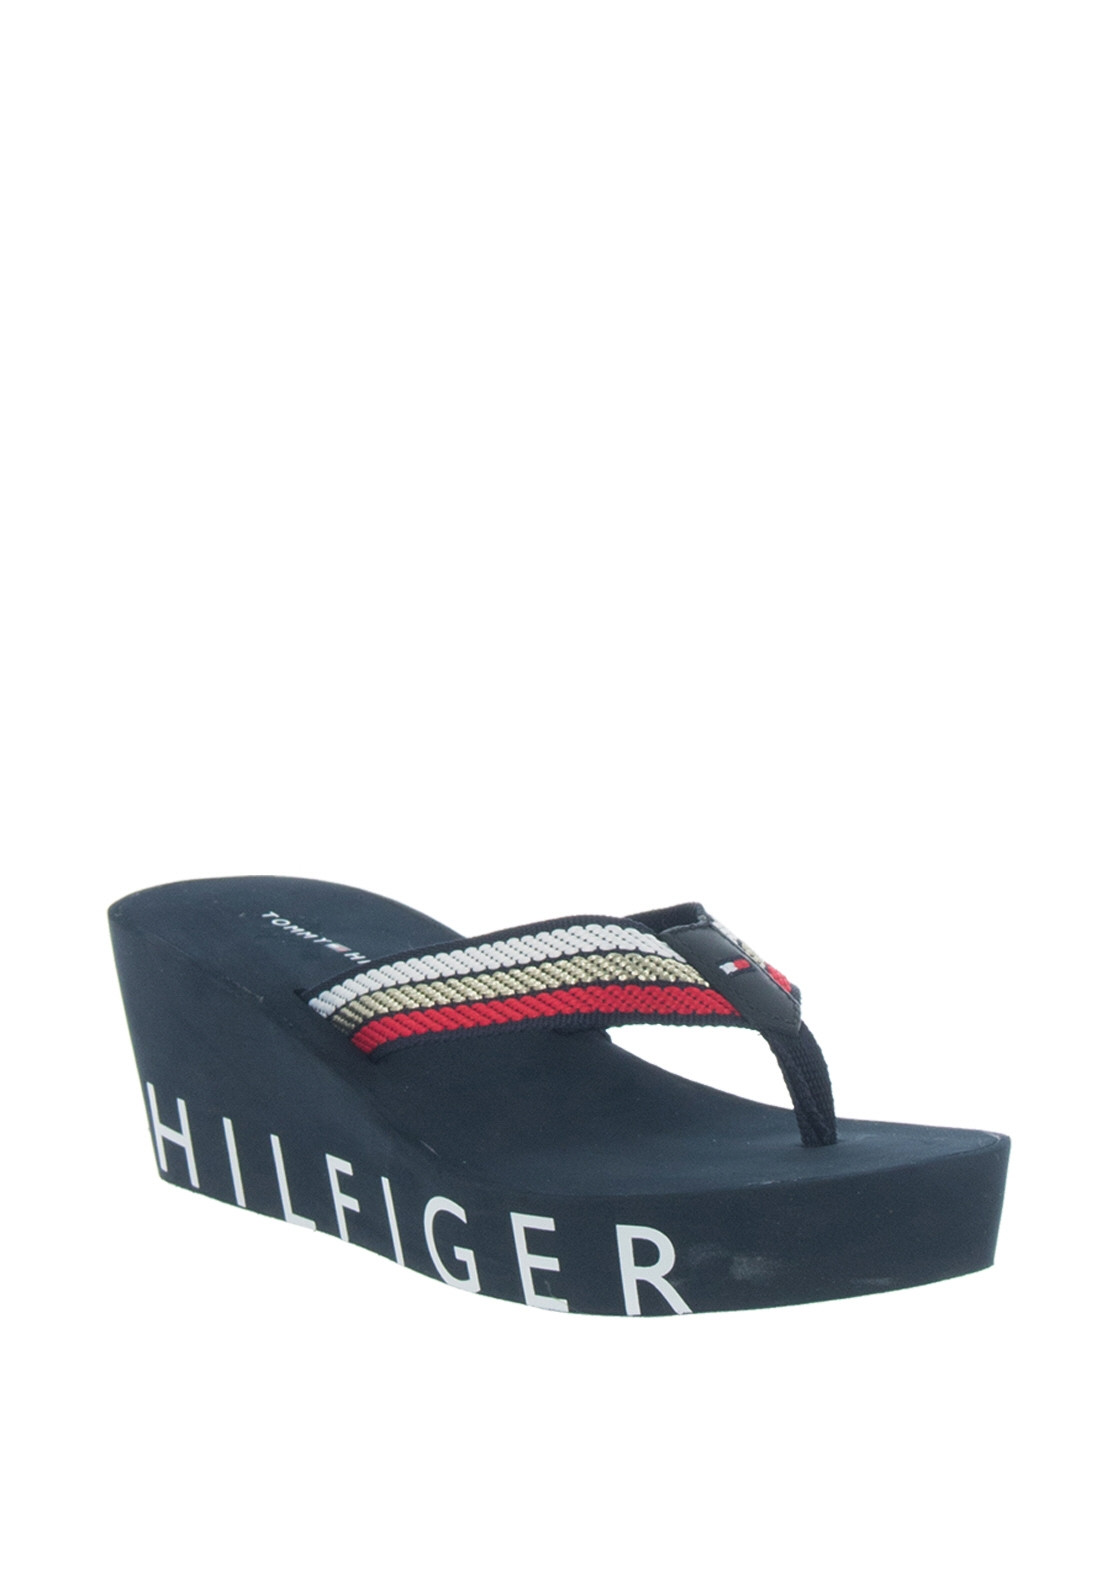 2061bfee3 Tommy Hilfiger Womens Signature Wedge Flip Flops